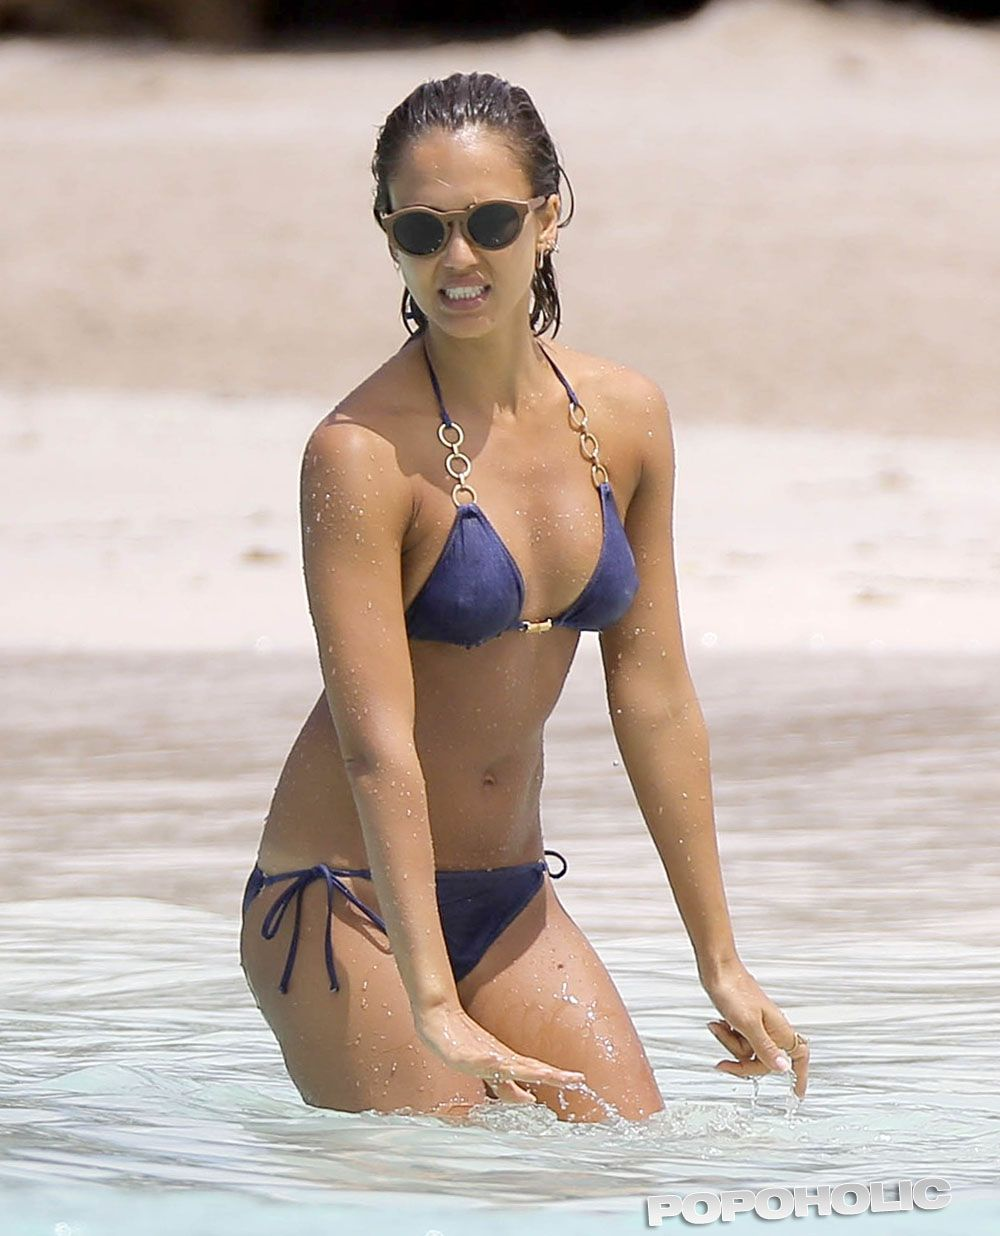 Jessica alba bikini 07 jpg authoritative message